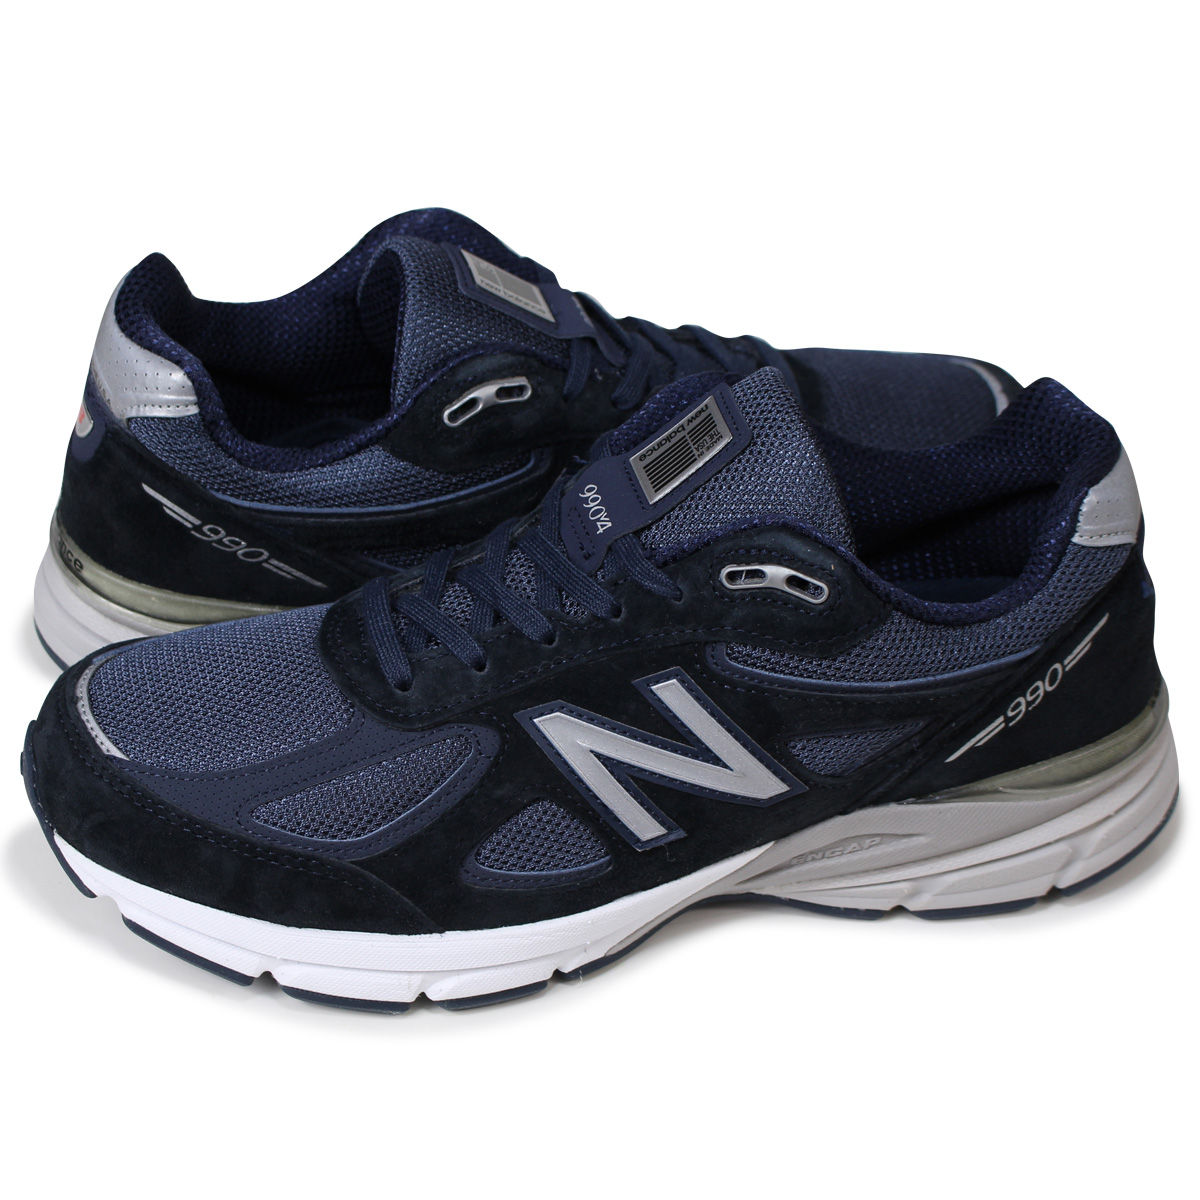 size 40 0c09a 83d4a new balance M990NV4 990 men's New Balance sneakers D Wise shoes navy MADE  IN USA